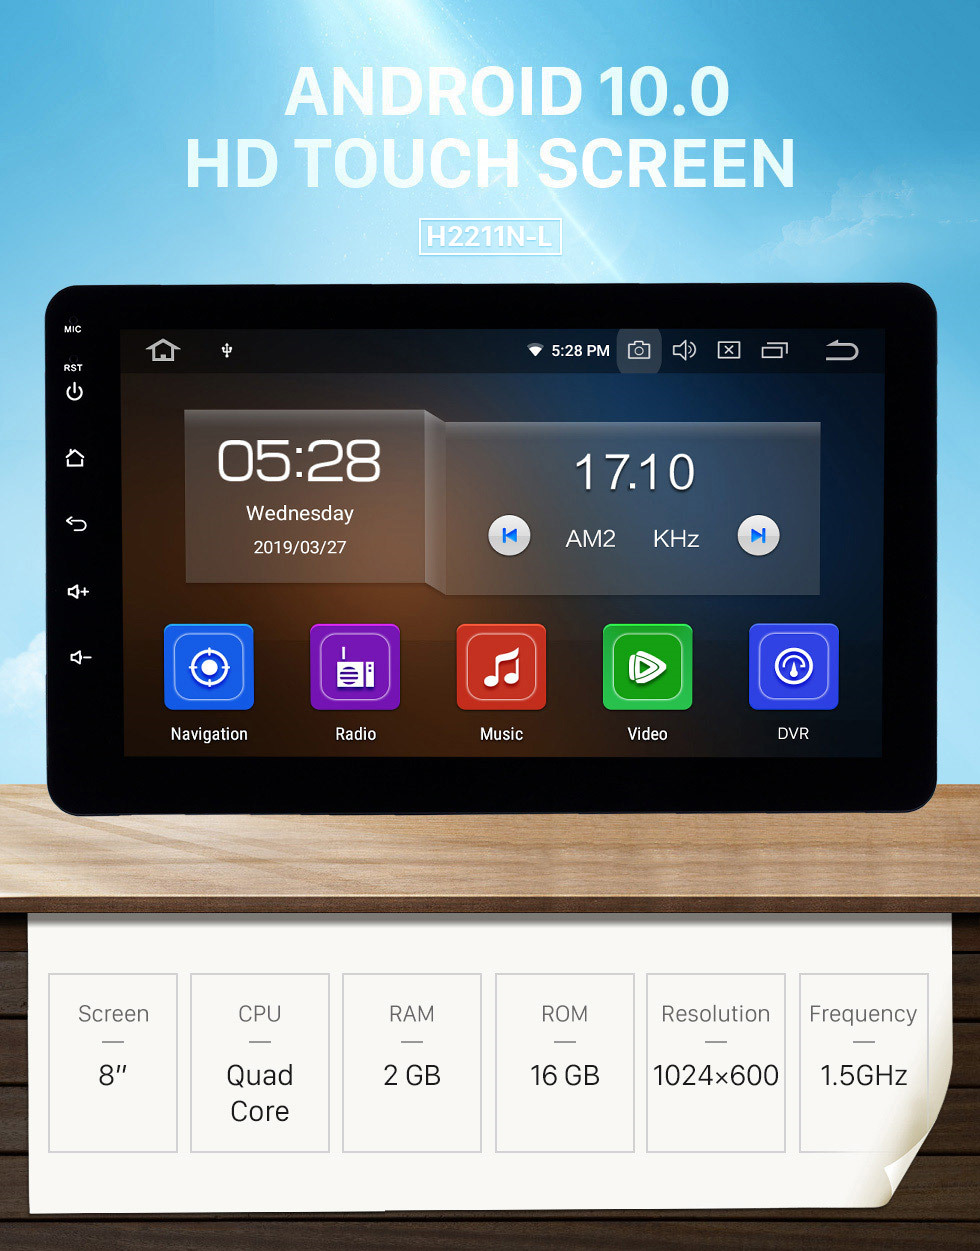 Seicane 8 inch Android 10.0 Universal Radio Bluetooth HD Touchscreen GPS Navigation Carplay USB AUX support 4G WIFI Rearview camera OBD2 TPMS DAB+ DVR